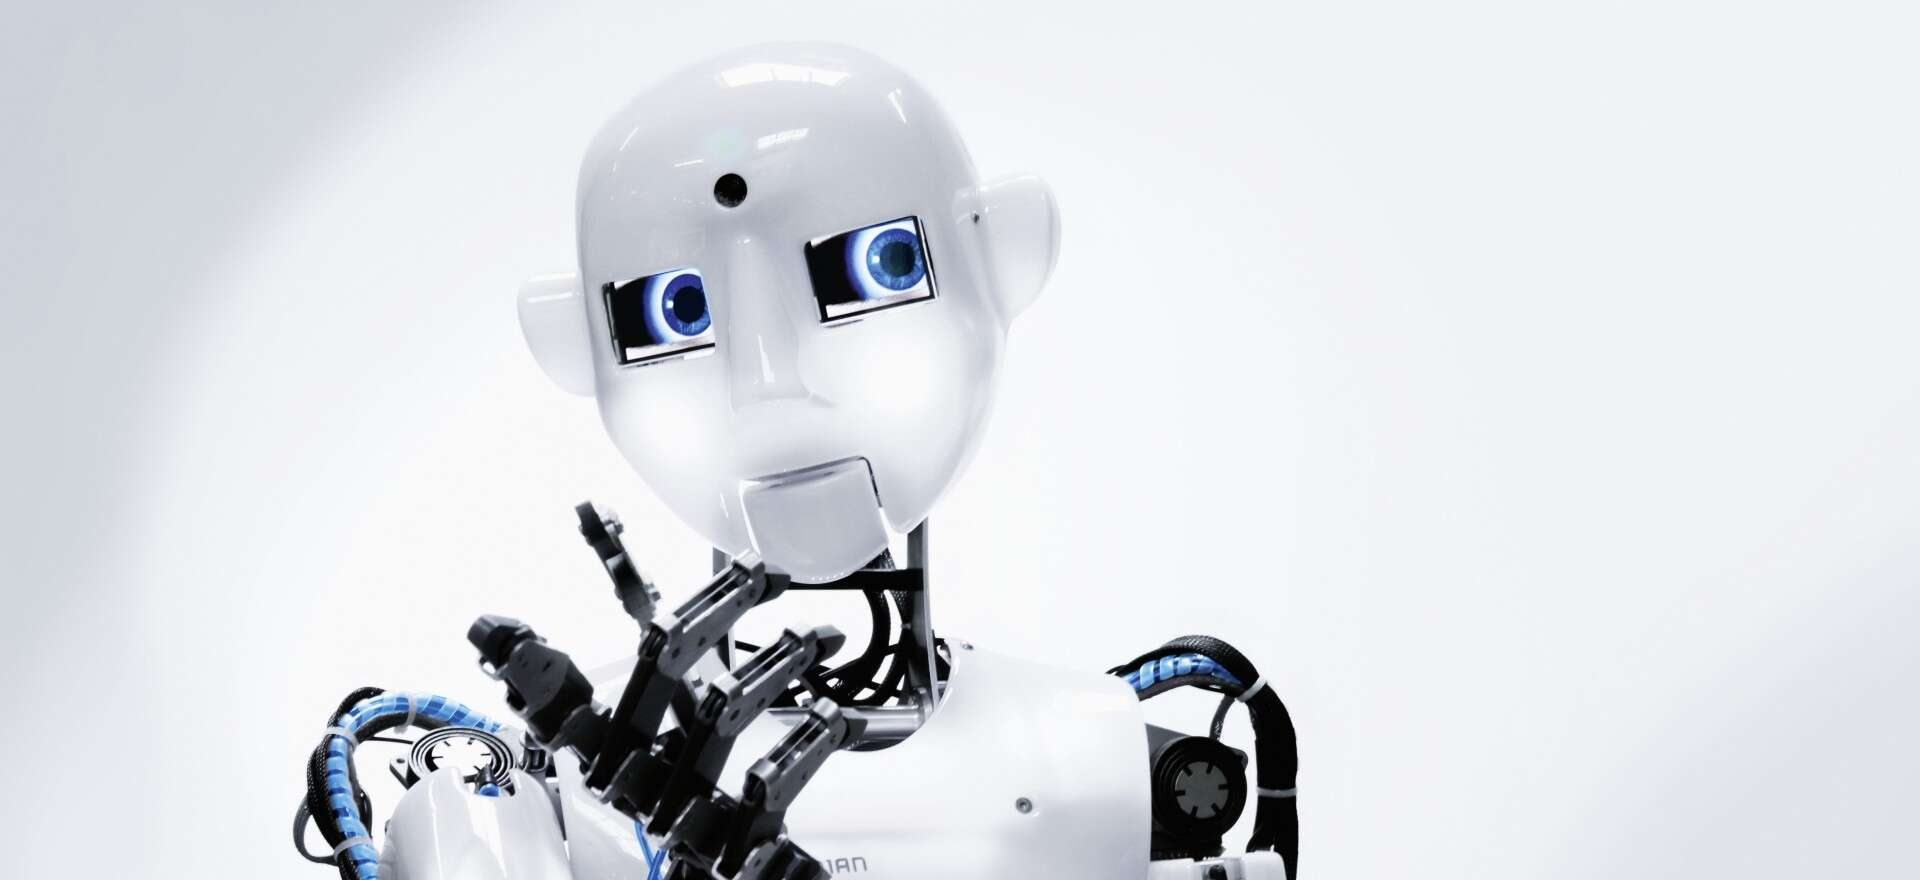 The humanoid robot RoboThespian moves using technology developed by Festo.